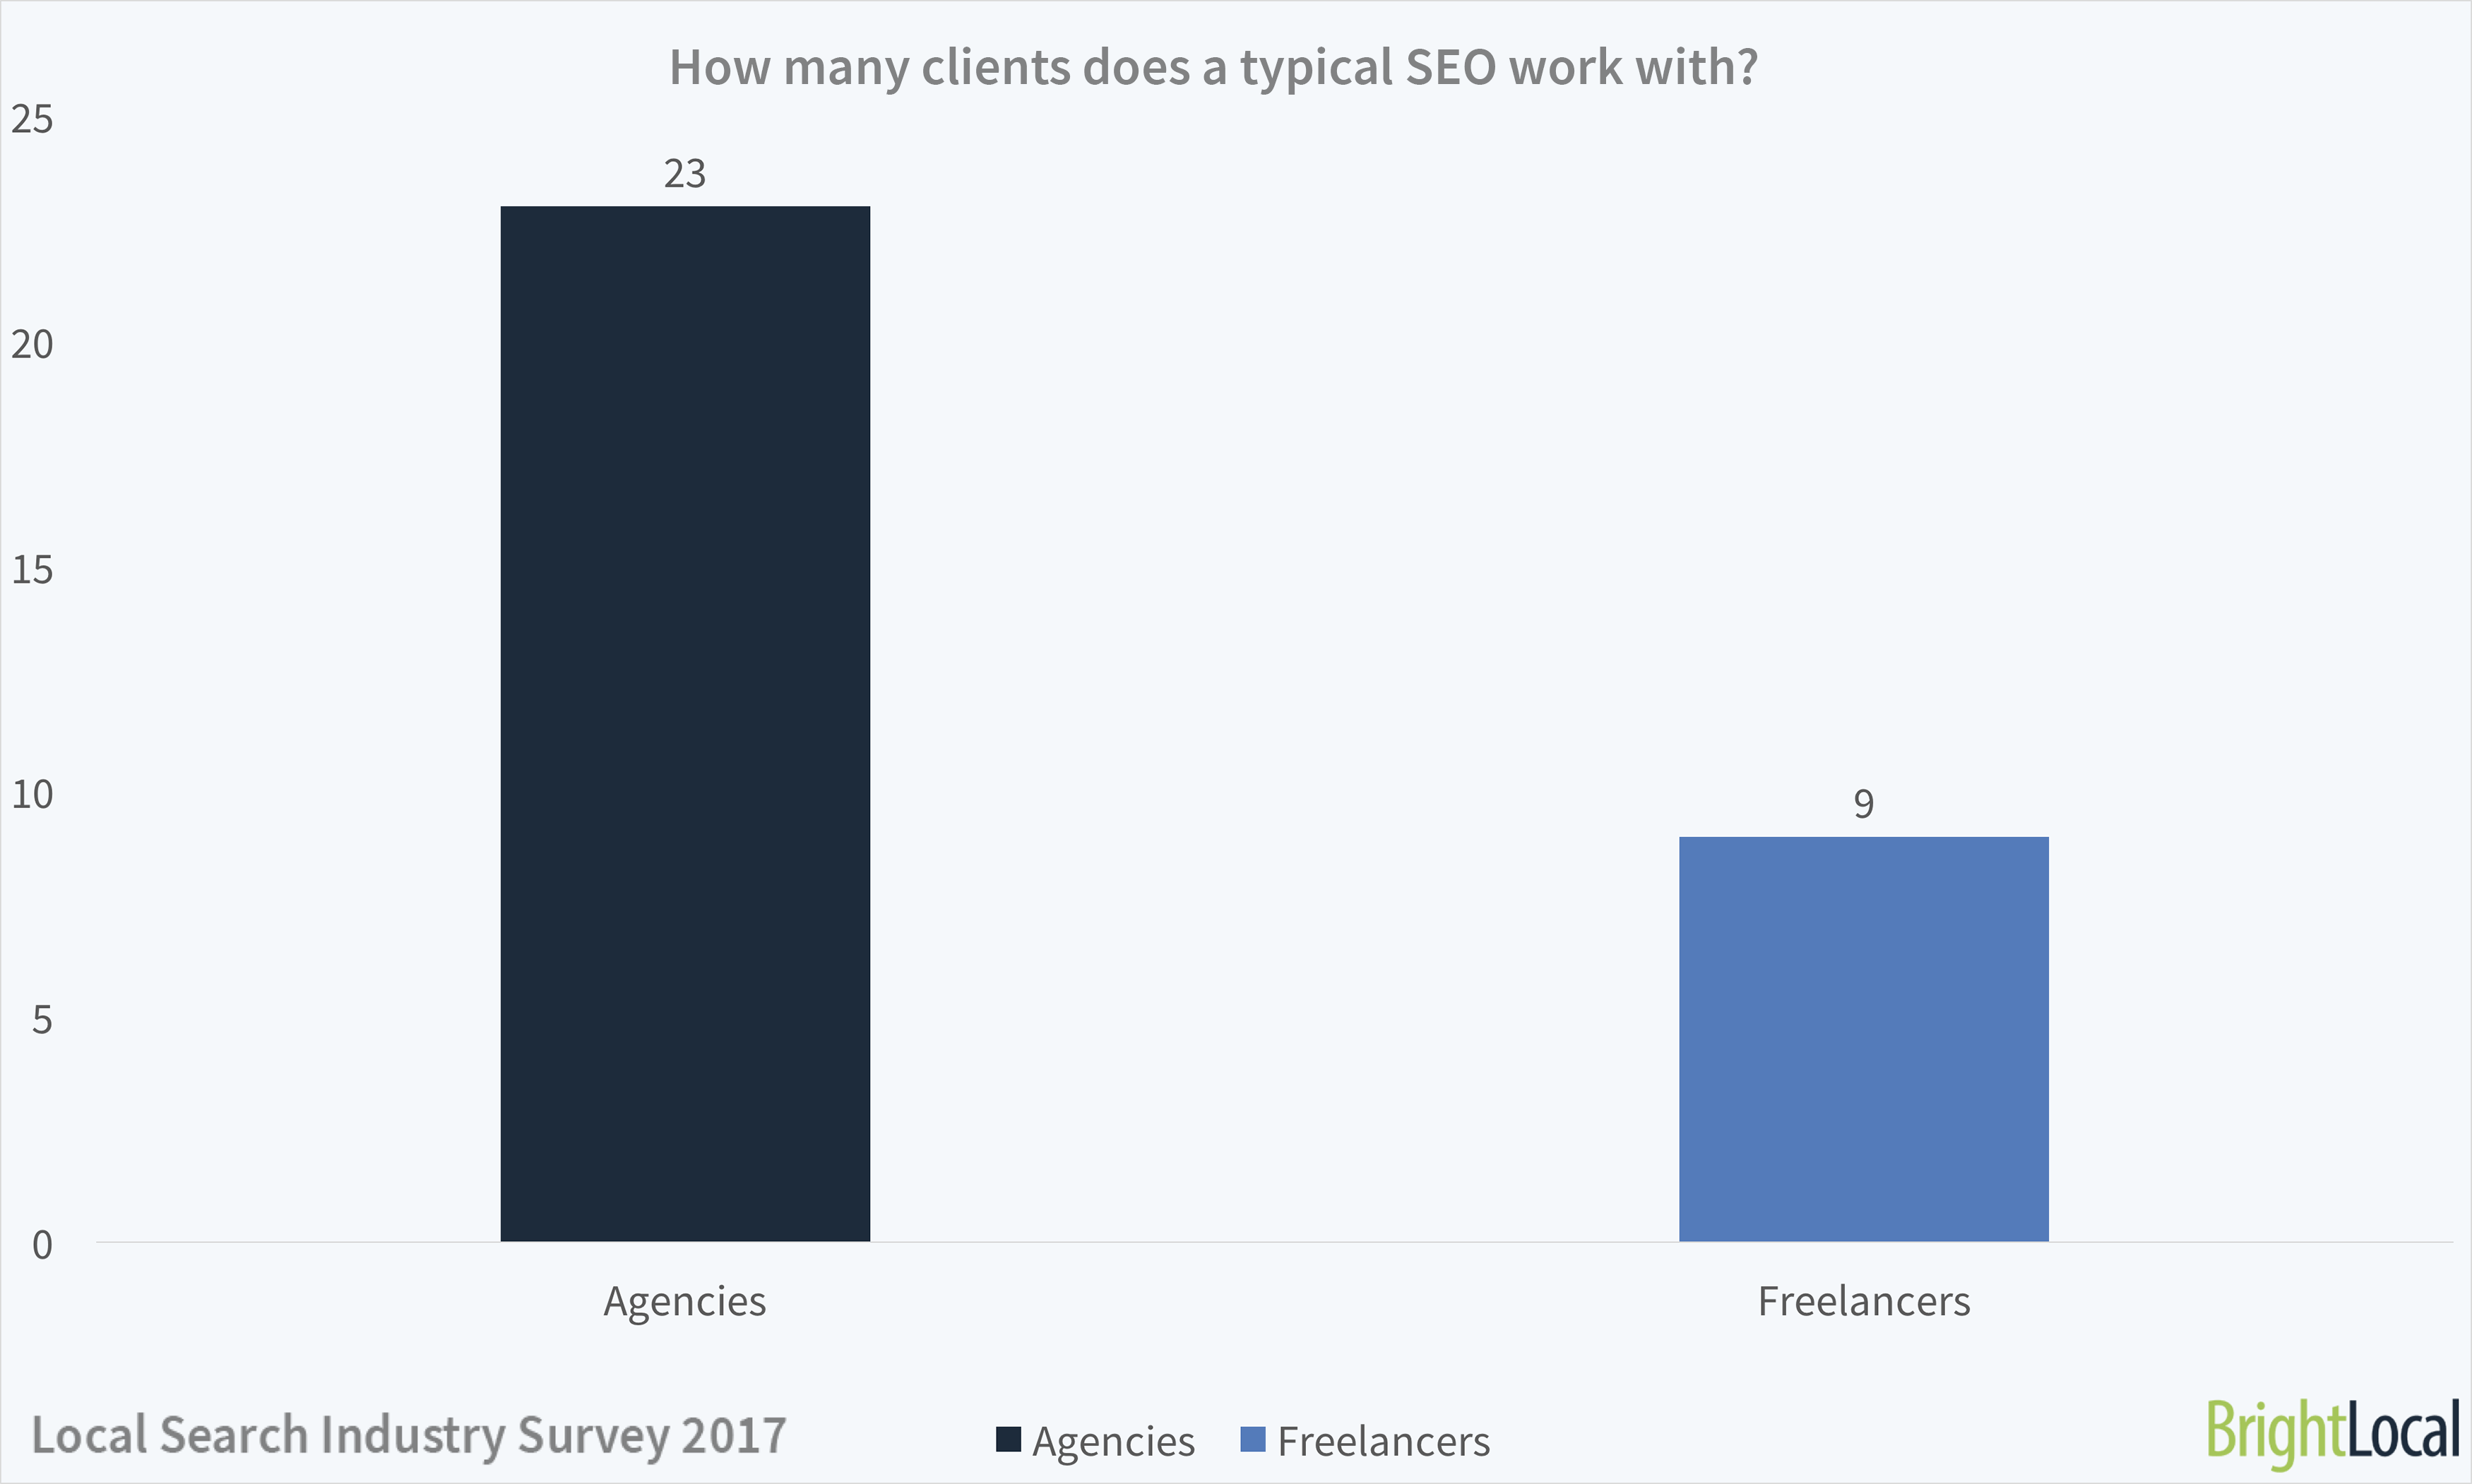 How many SEO clients do agencies and freelancers manage?